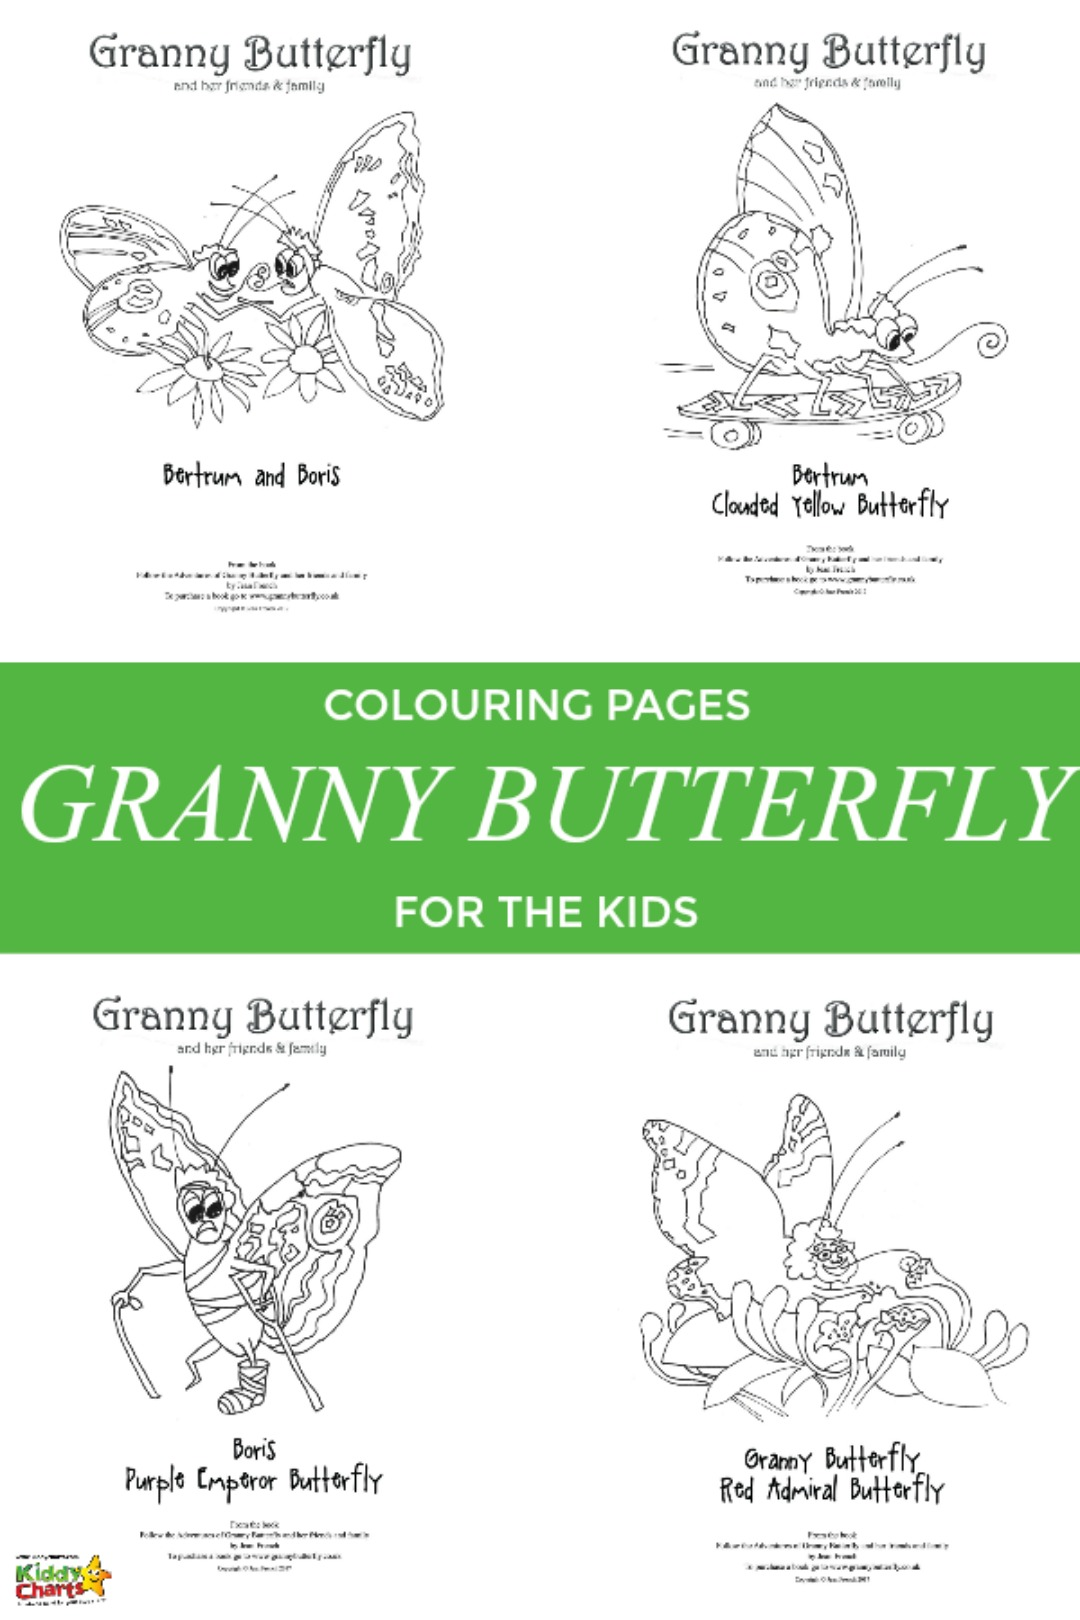 Granny Butterfly colouring pages